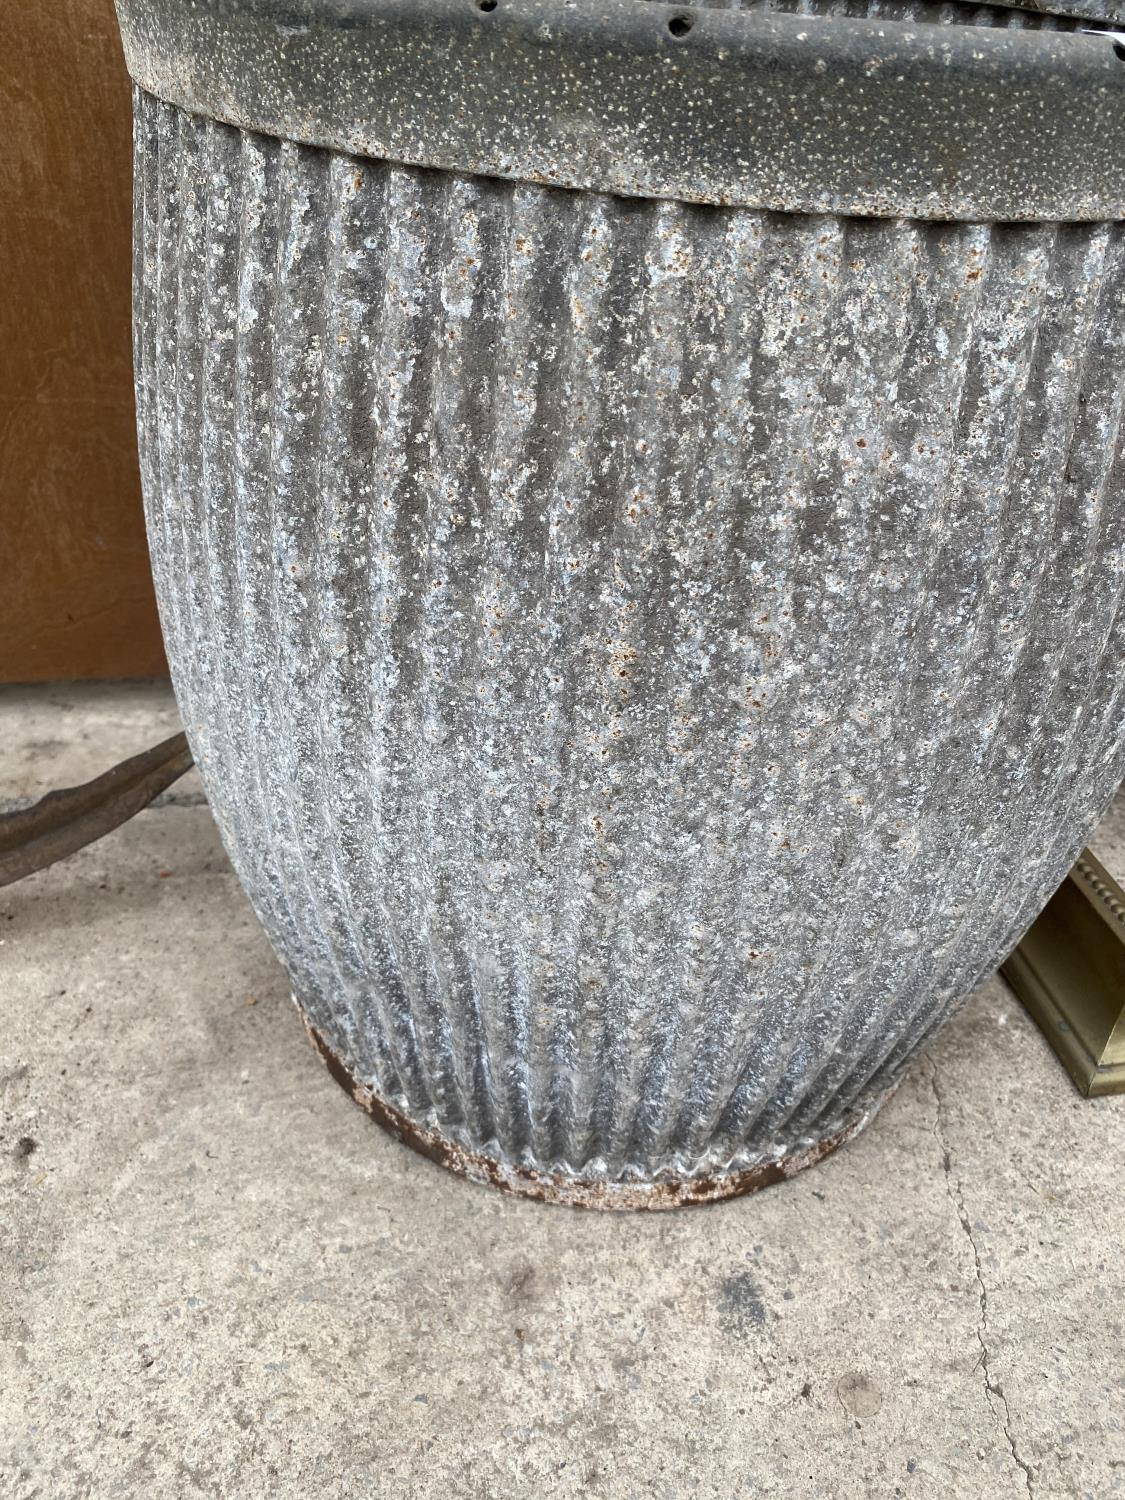 A VINTAGE GALVANISED DOLLY TUB - Image 2 of 4